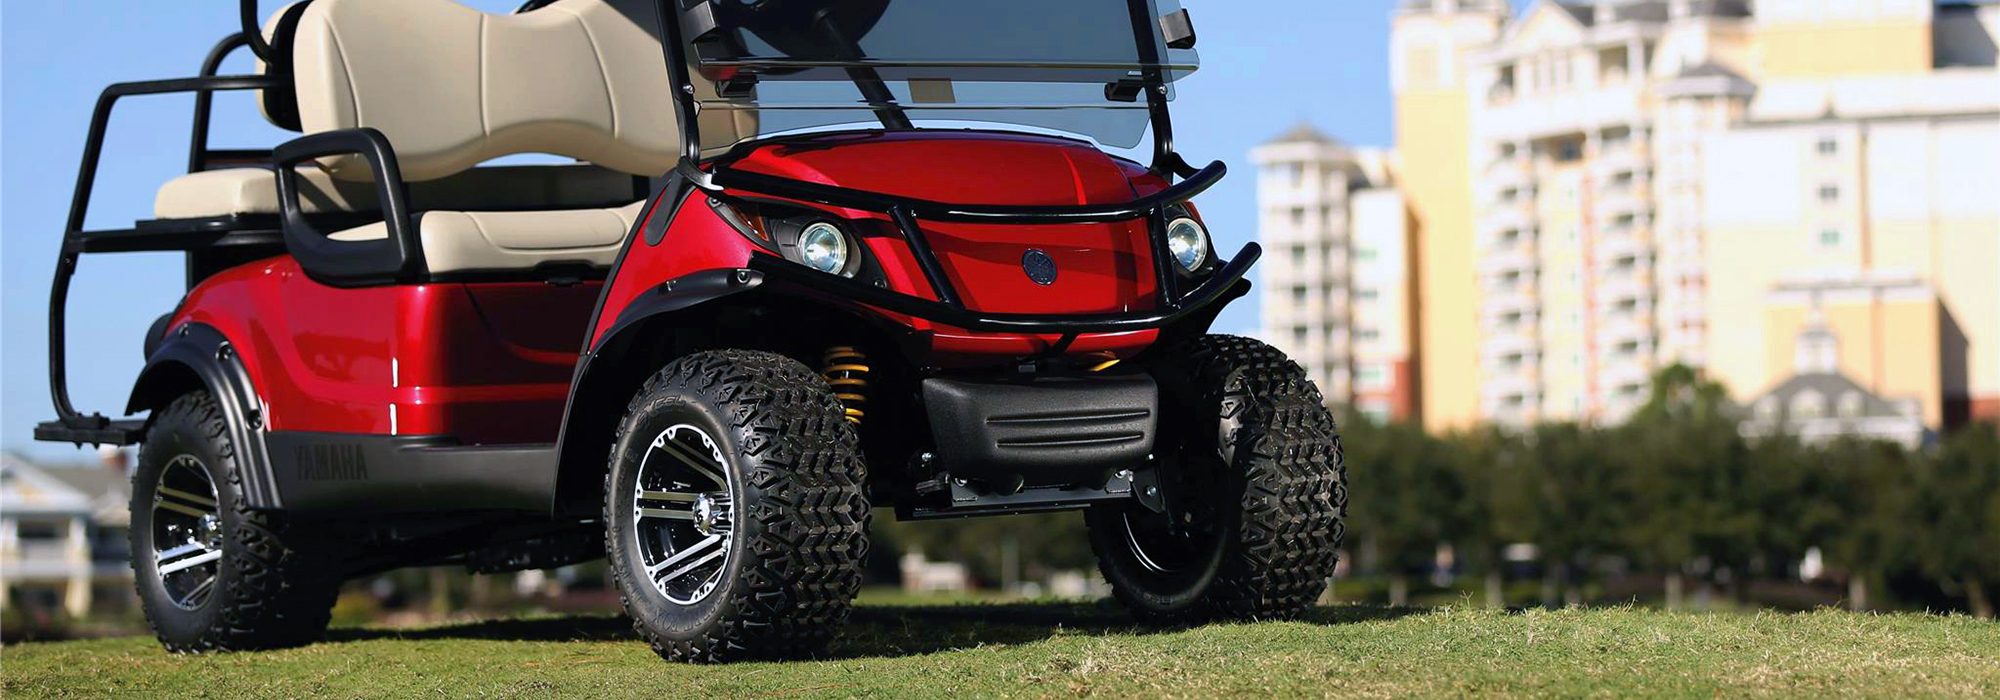 Home | Golf Carts in Fort Smith AR | Golf Car Accessories